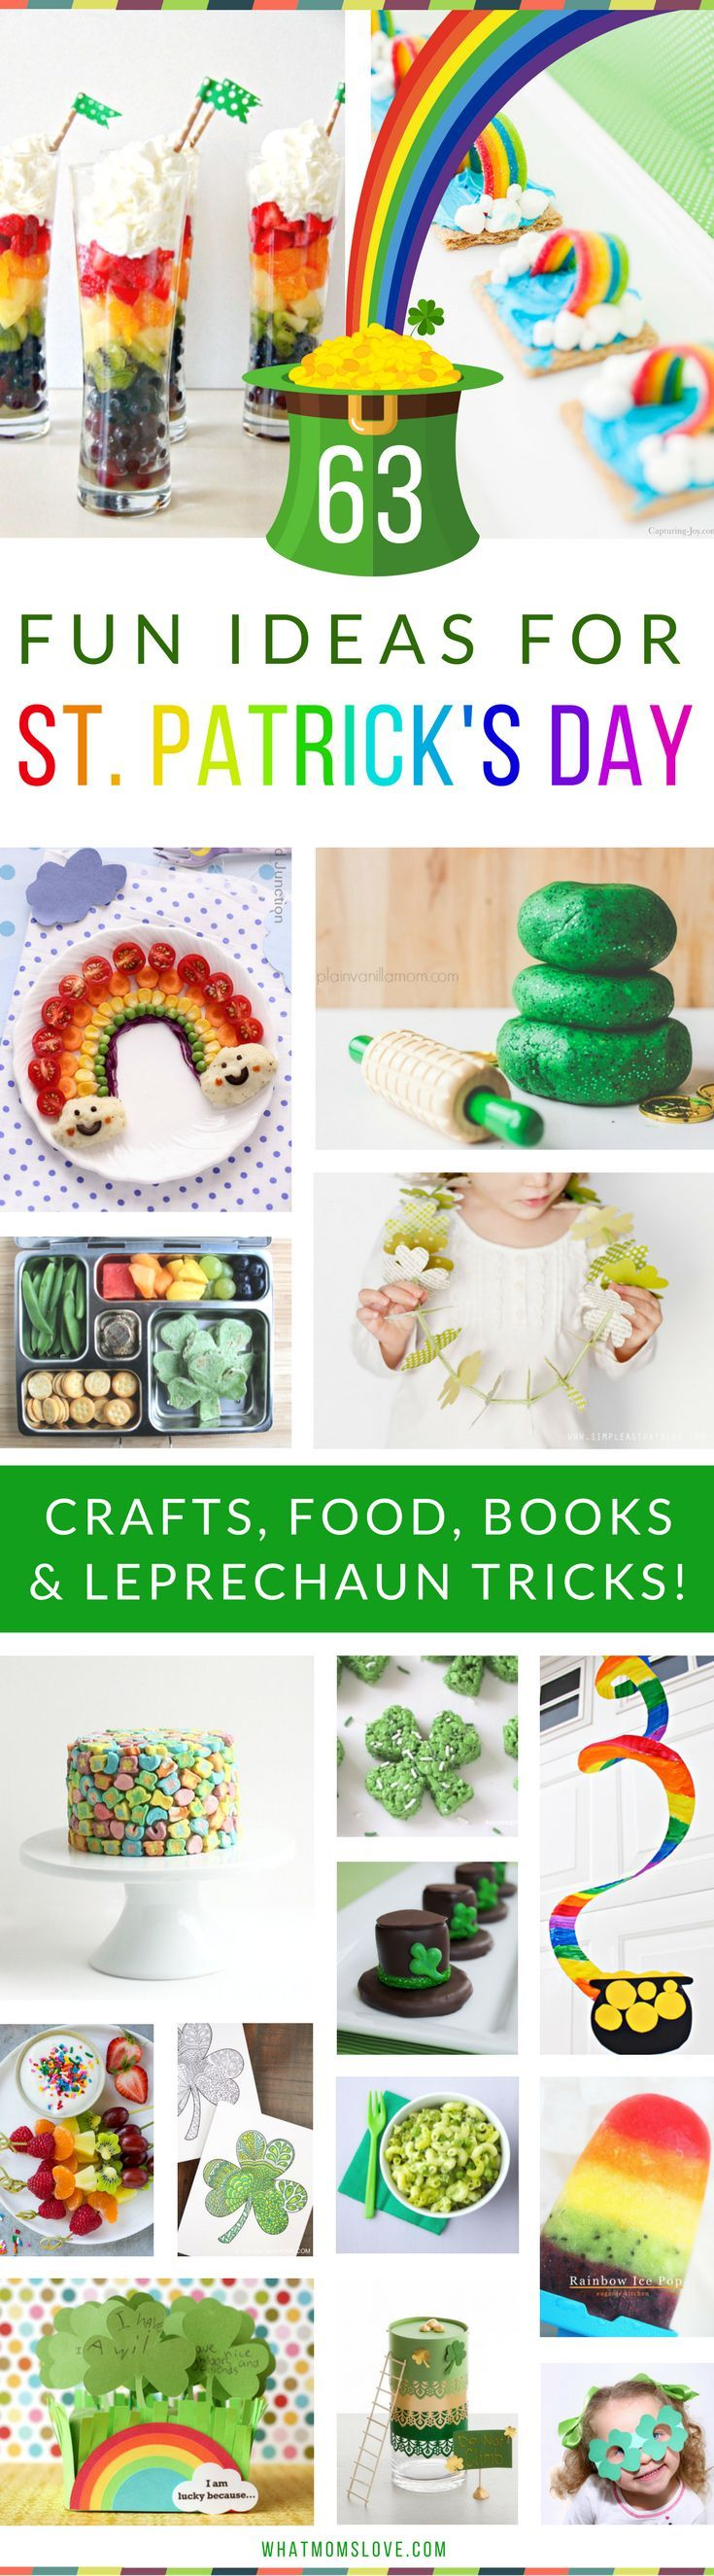 The Best St Patricks Day Activities for Kids | Fun St. Paddy's Crafts, Festive Food and Snacks, Books, Leprechaun tricks and traps, plus more brilliant ideas to celebrate with shamrocks and rainbows galore! Great ideas for toddlers, preschoolers and up. F